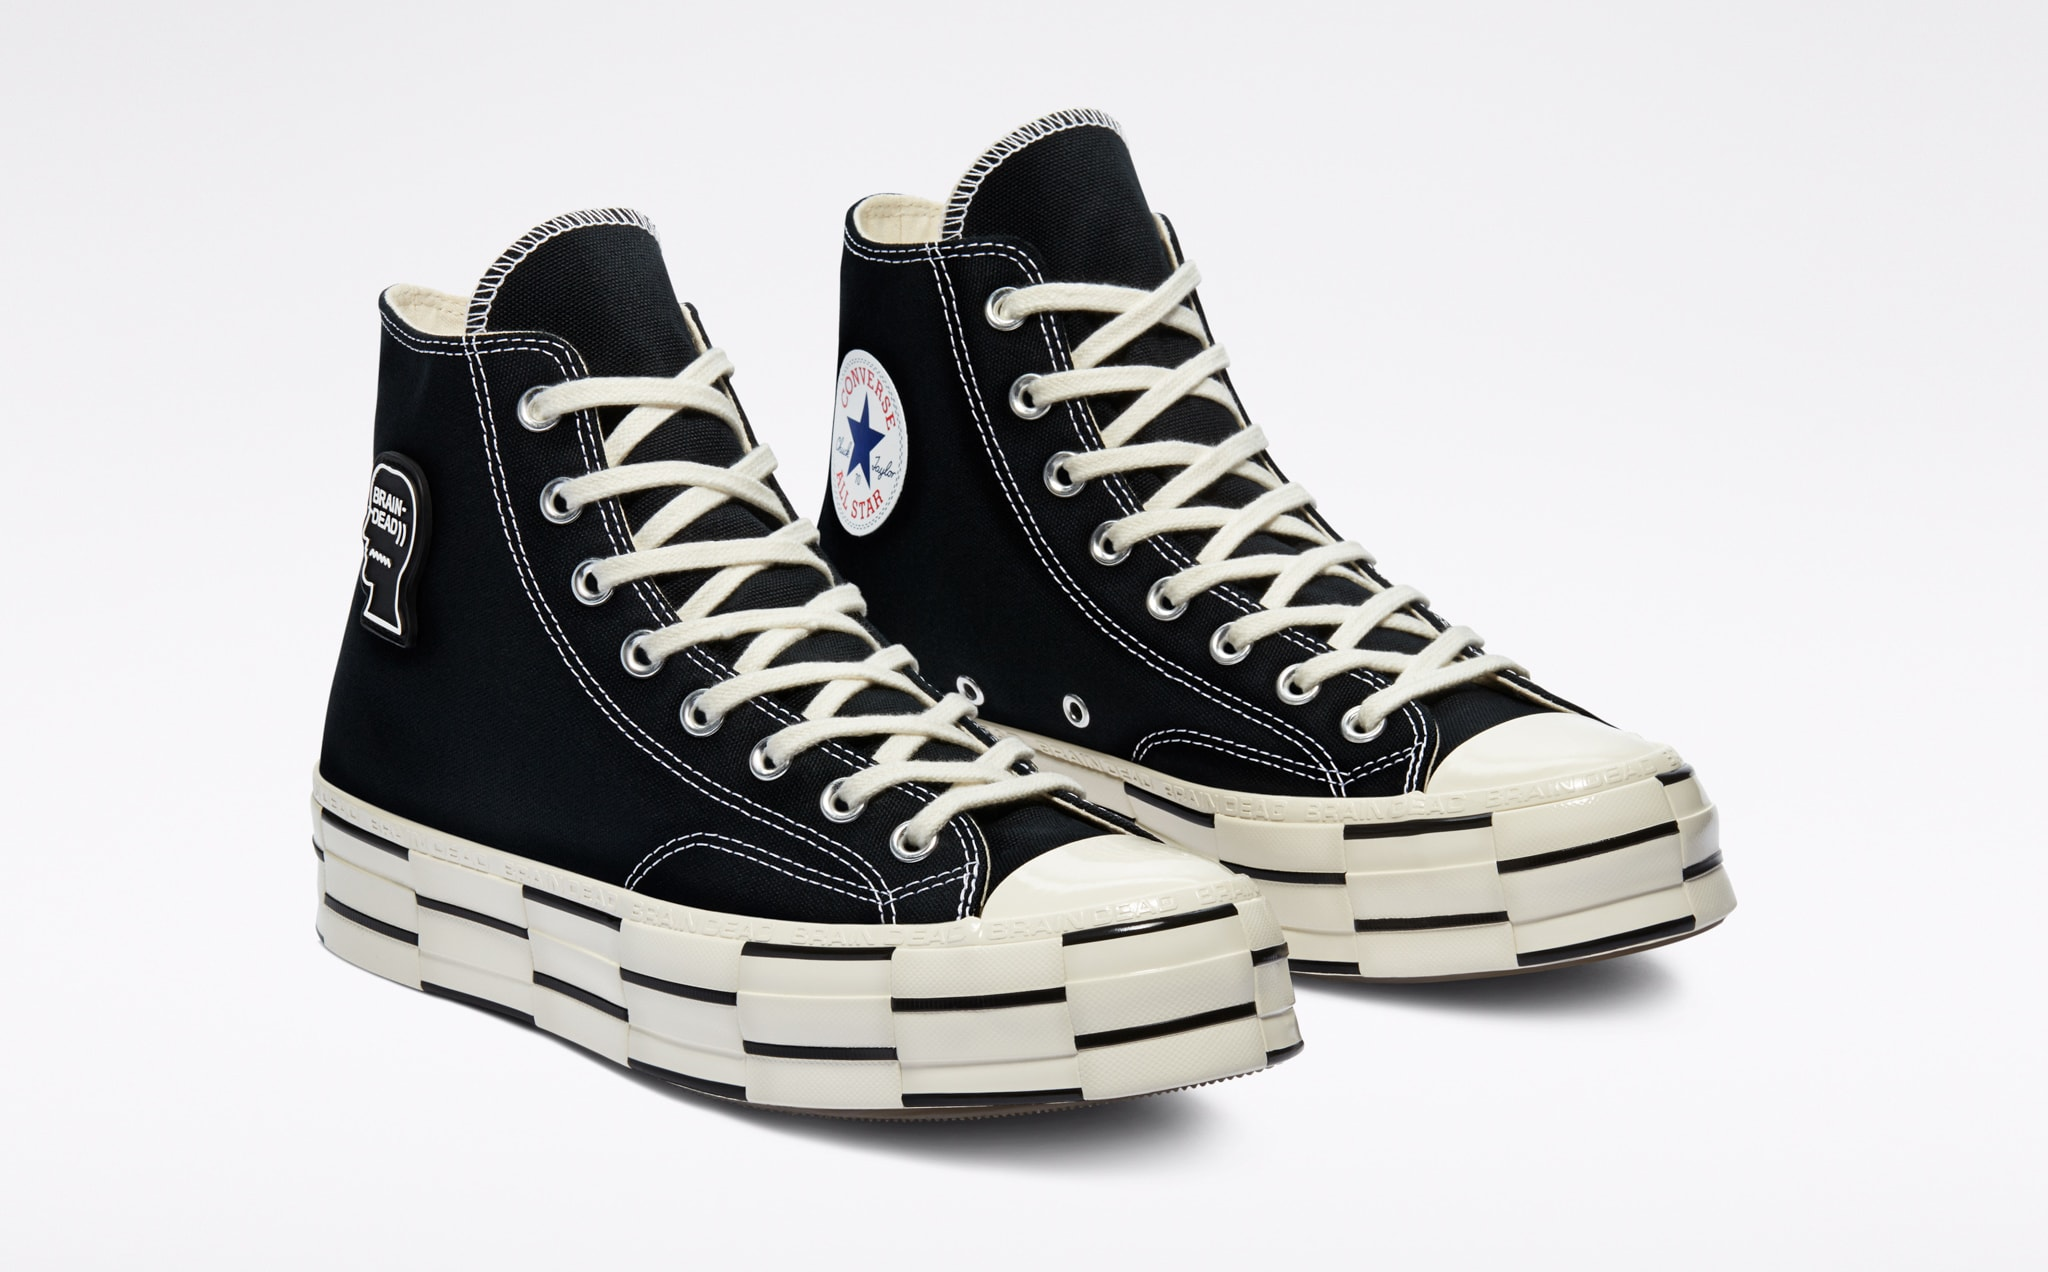 Brain Dead x Converse Chuck 70 DSM Exclusive Pair